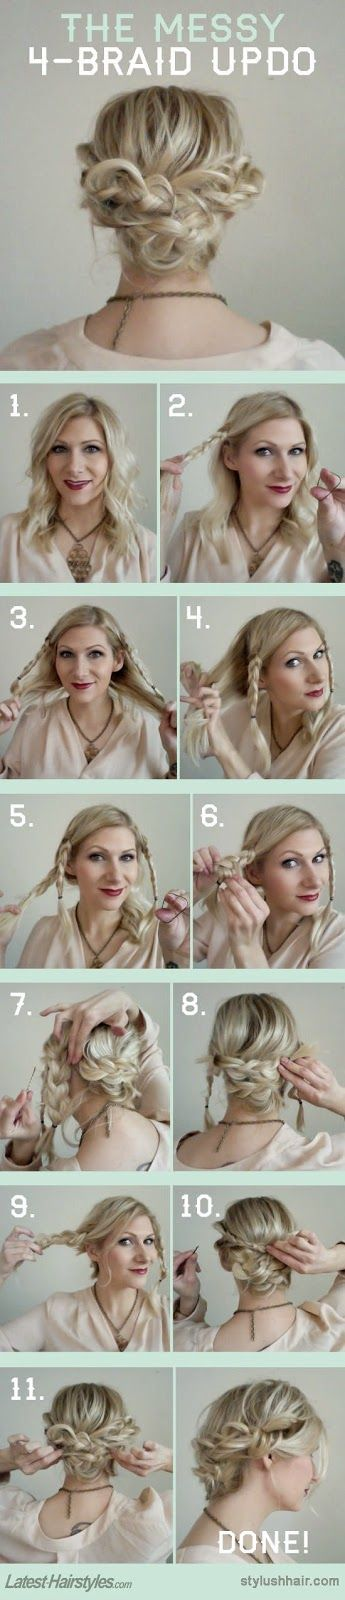 How to Chic: THE MESSY 4-BRAID UPDO